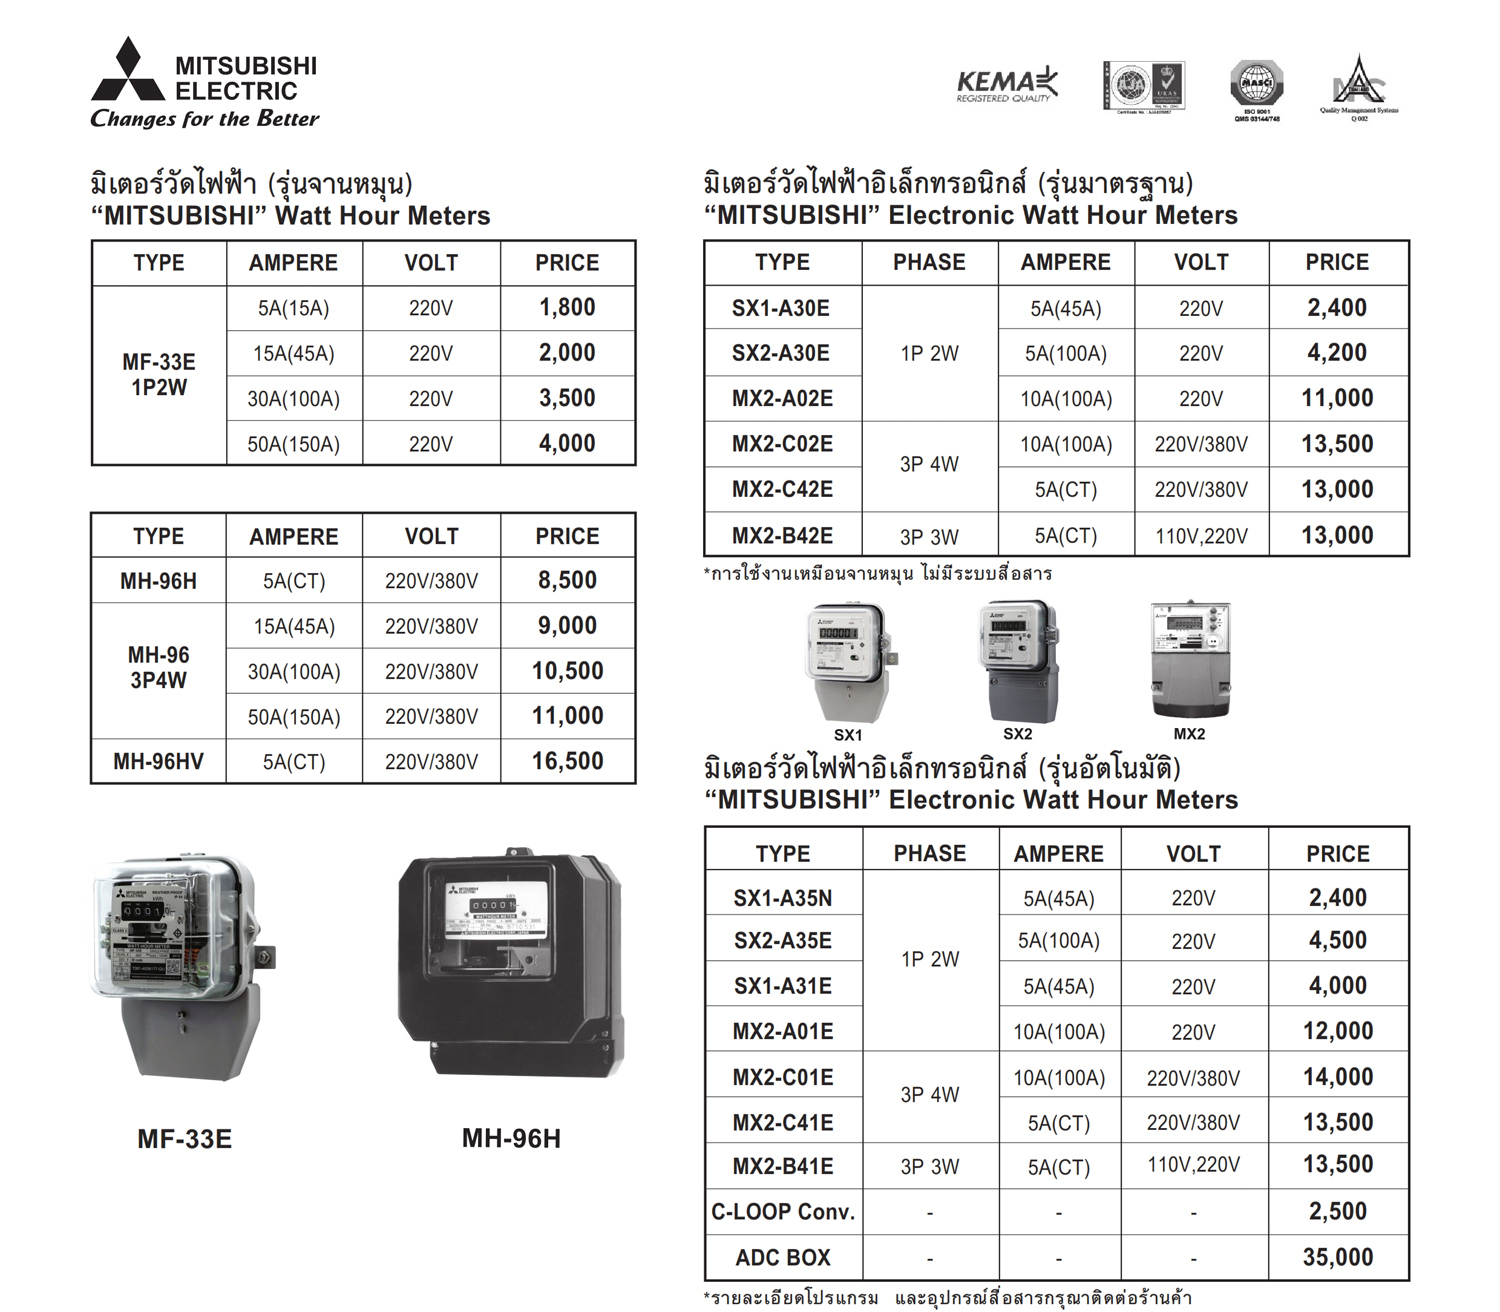 Mitsubishi Watt Hour Meters